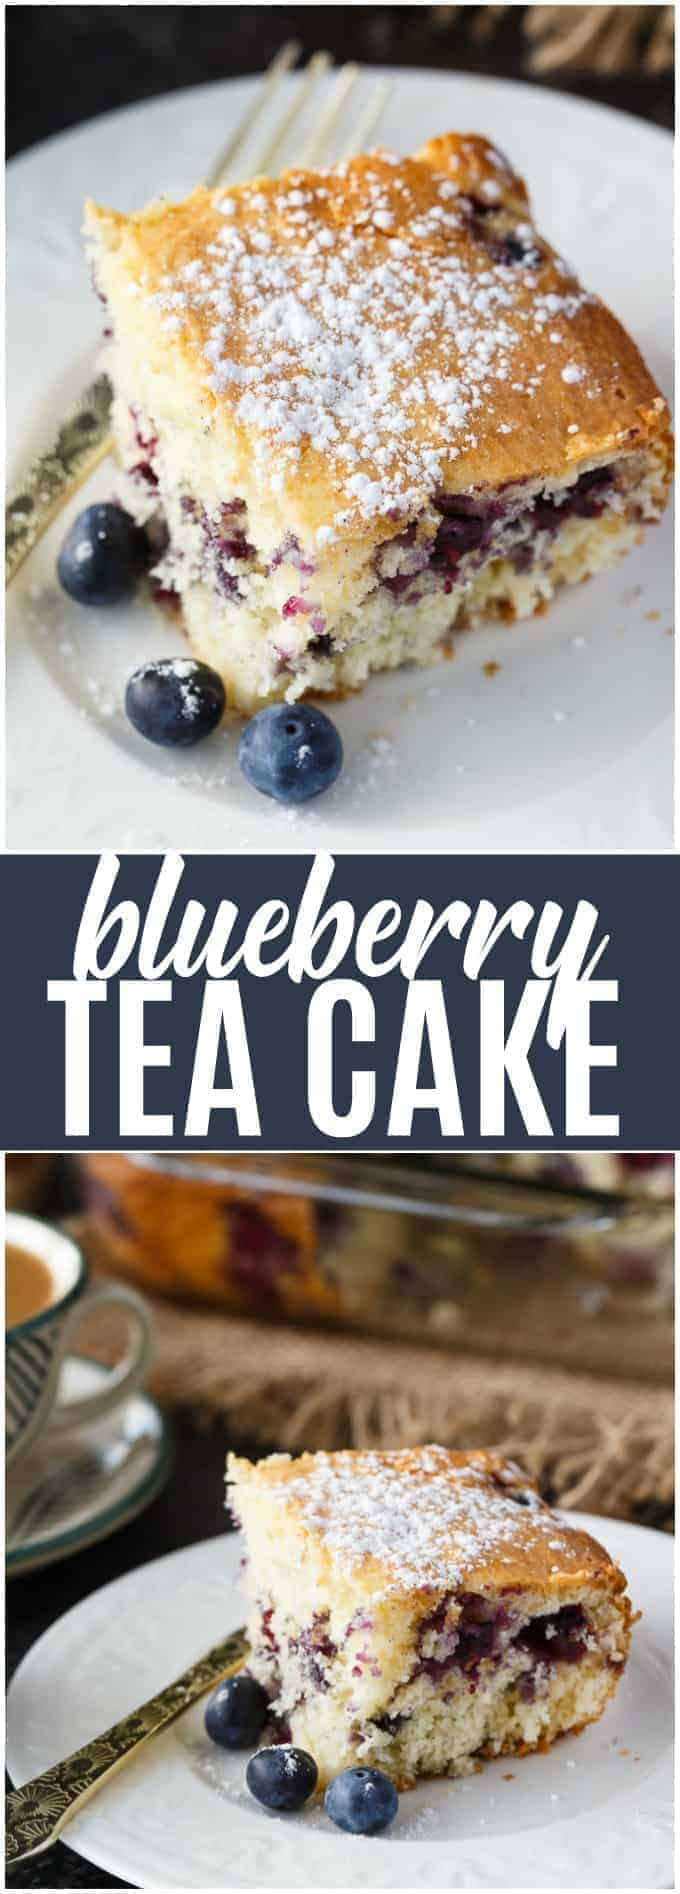 Blueberry Tea Cake - Enjoy for breakfast, dessert or as a mid-afternoon snack with a cup of your favourite tea. It's a wonderful recipe to use up your fresh blueberries.